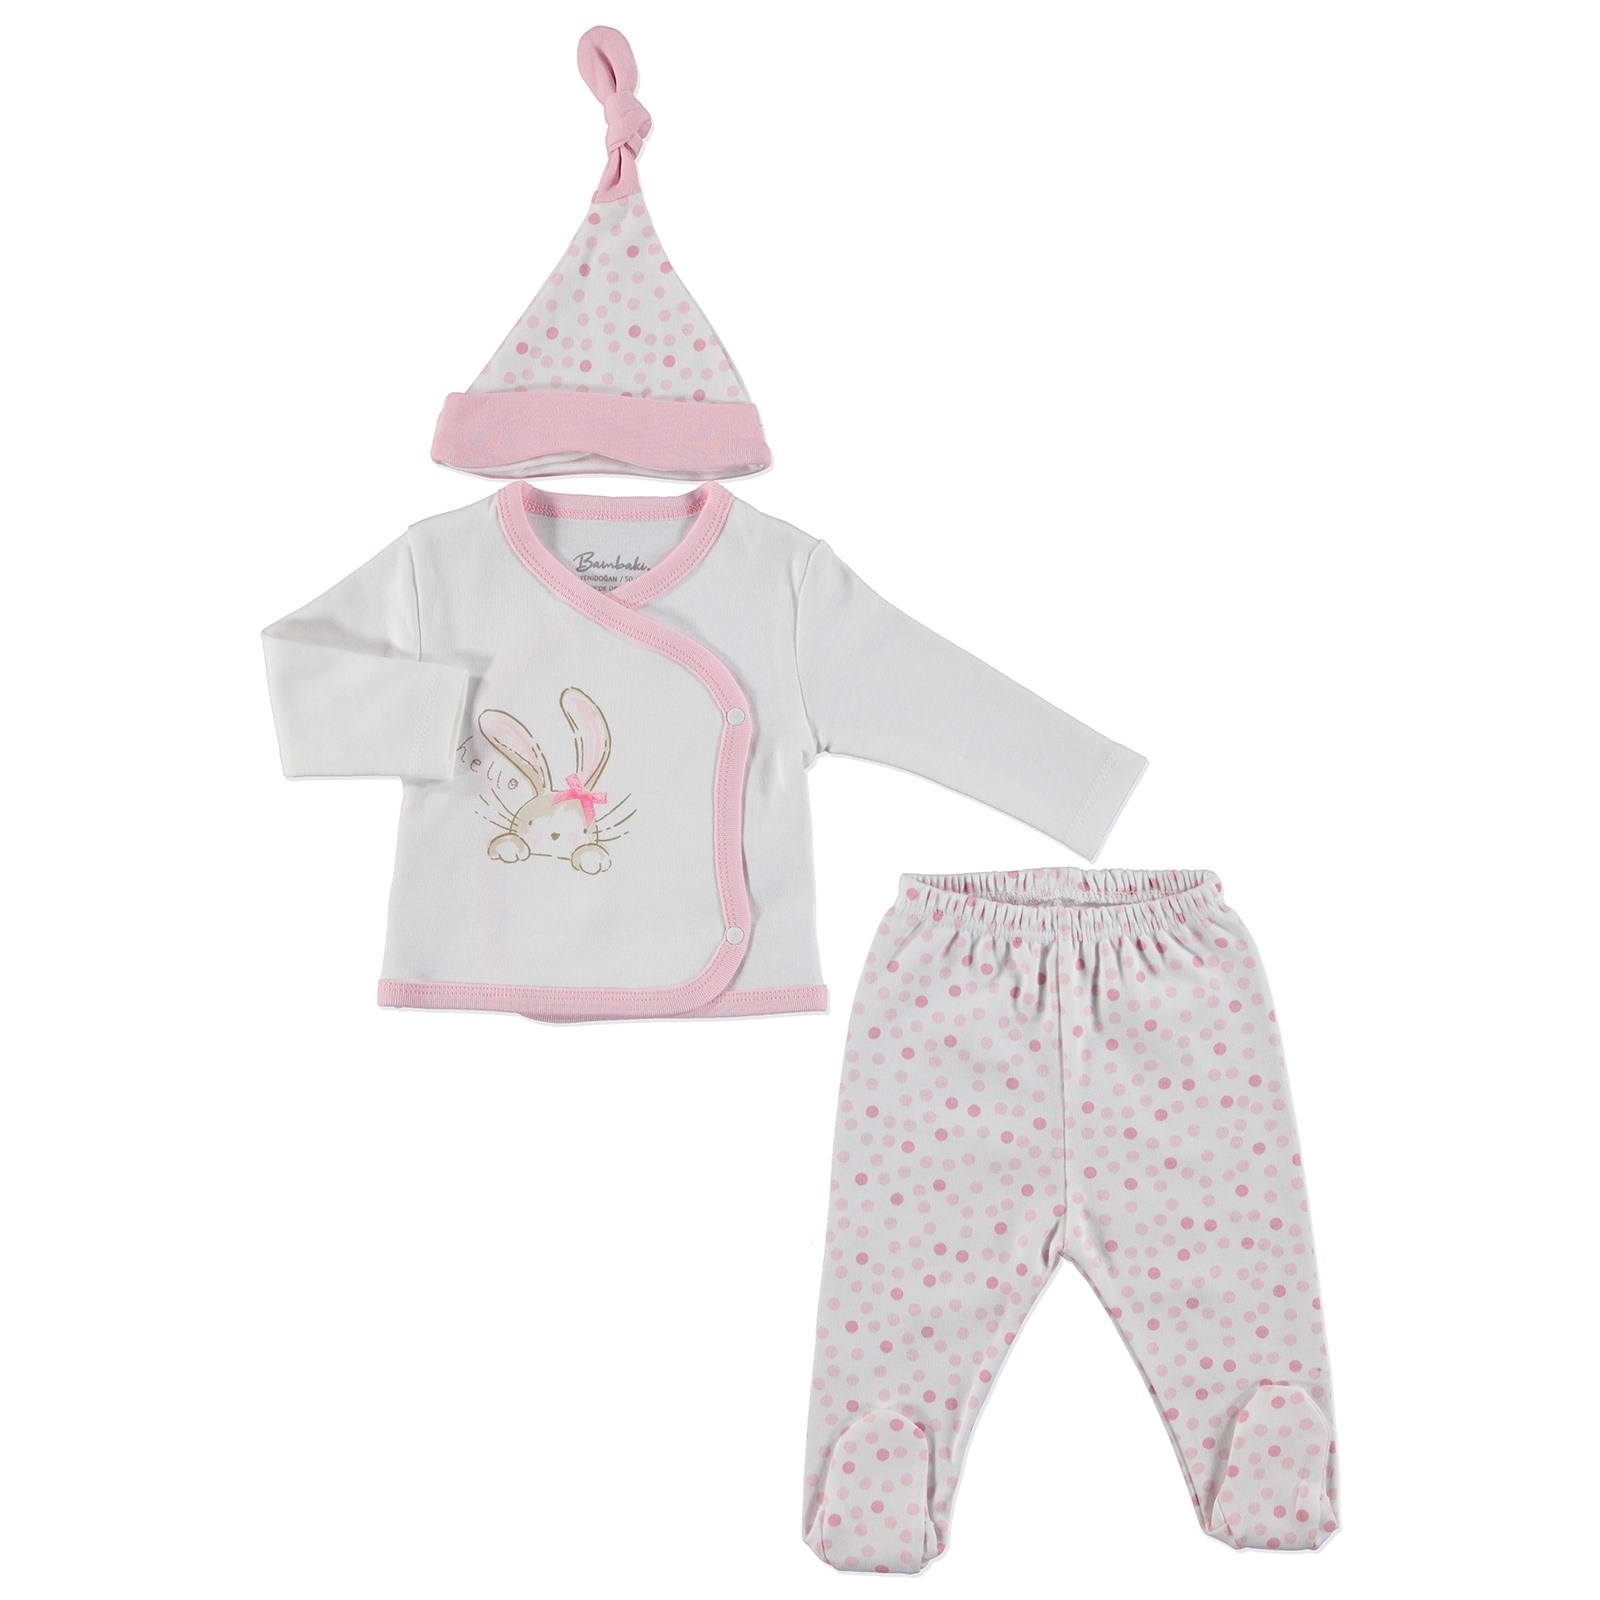 Ebebek Bambaki Newborn Baby Girl Hello Bodysuits Hat Footed Pants